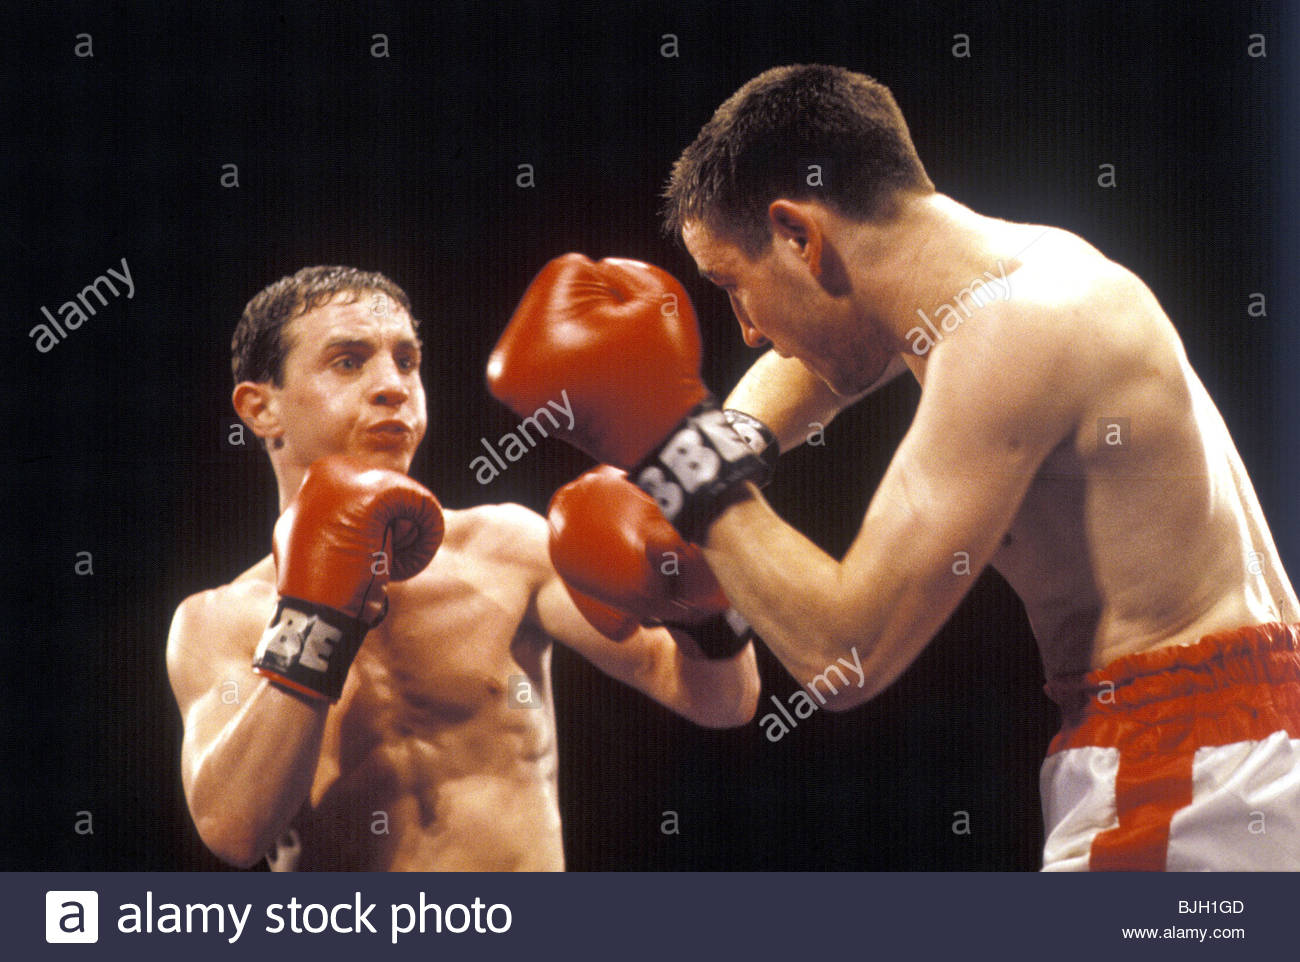 20/02/92 BANTAMWEIGHT CONTEST DAVE HARDIE V SEAN NORMAN SECC - GLASGOW Dave Hardie (left) in action against Sean - Stock Image